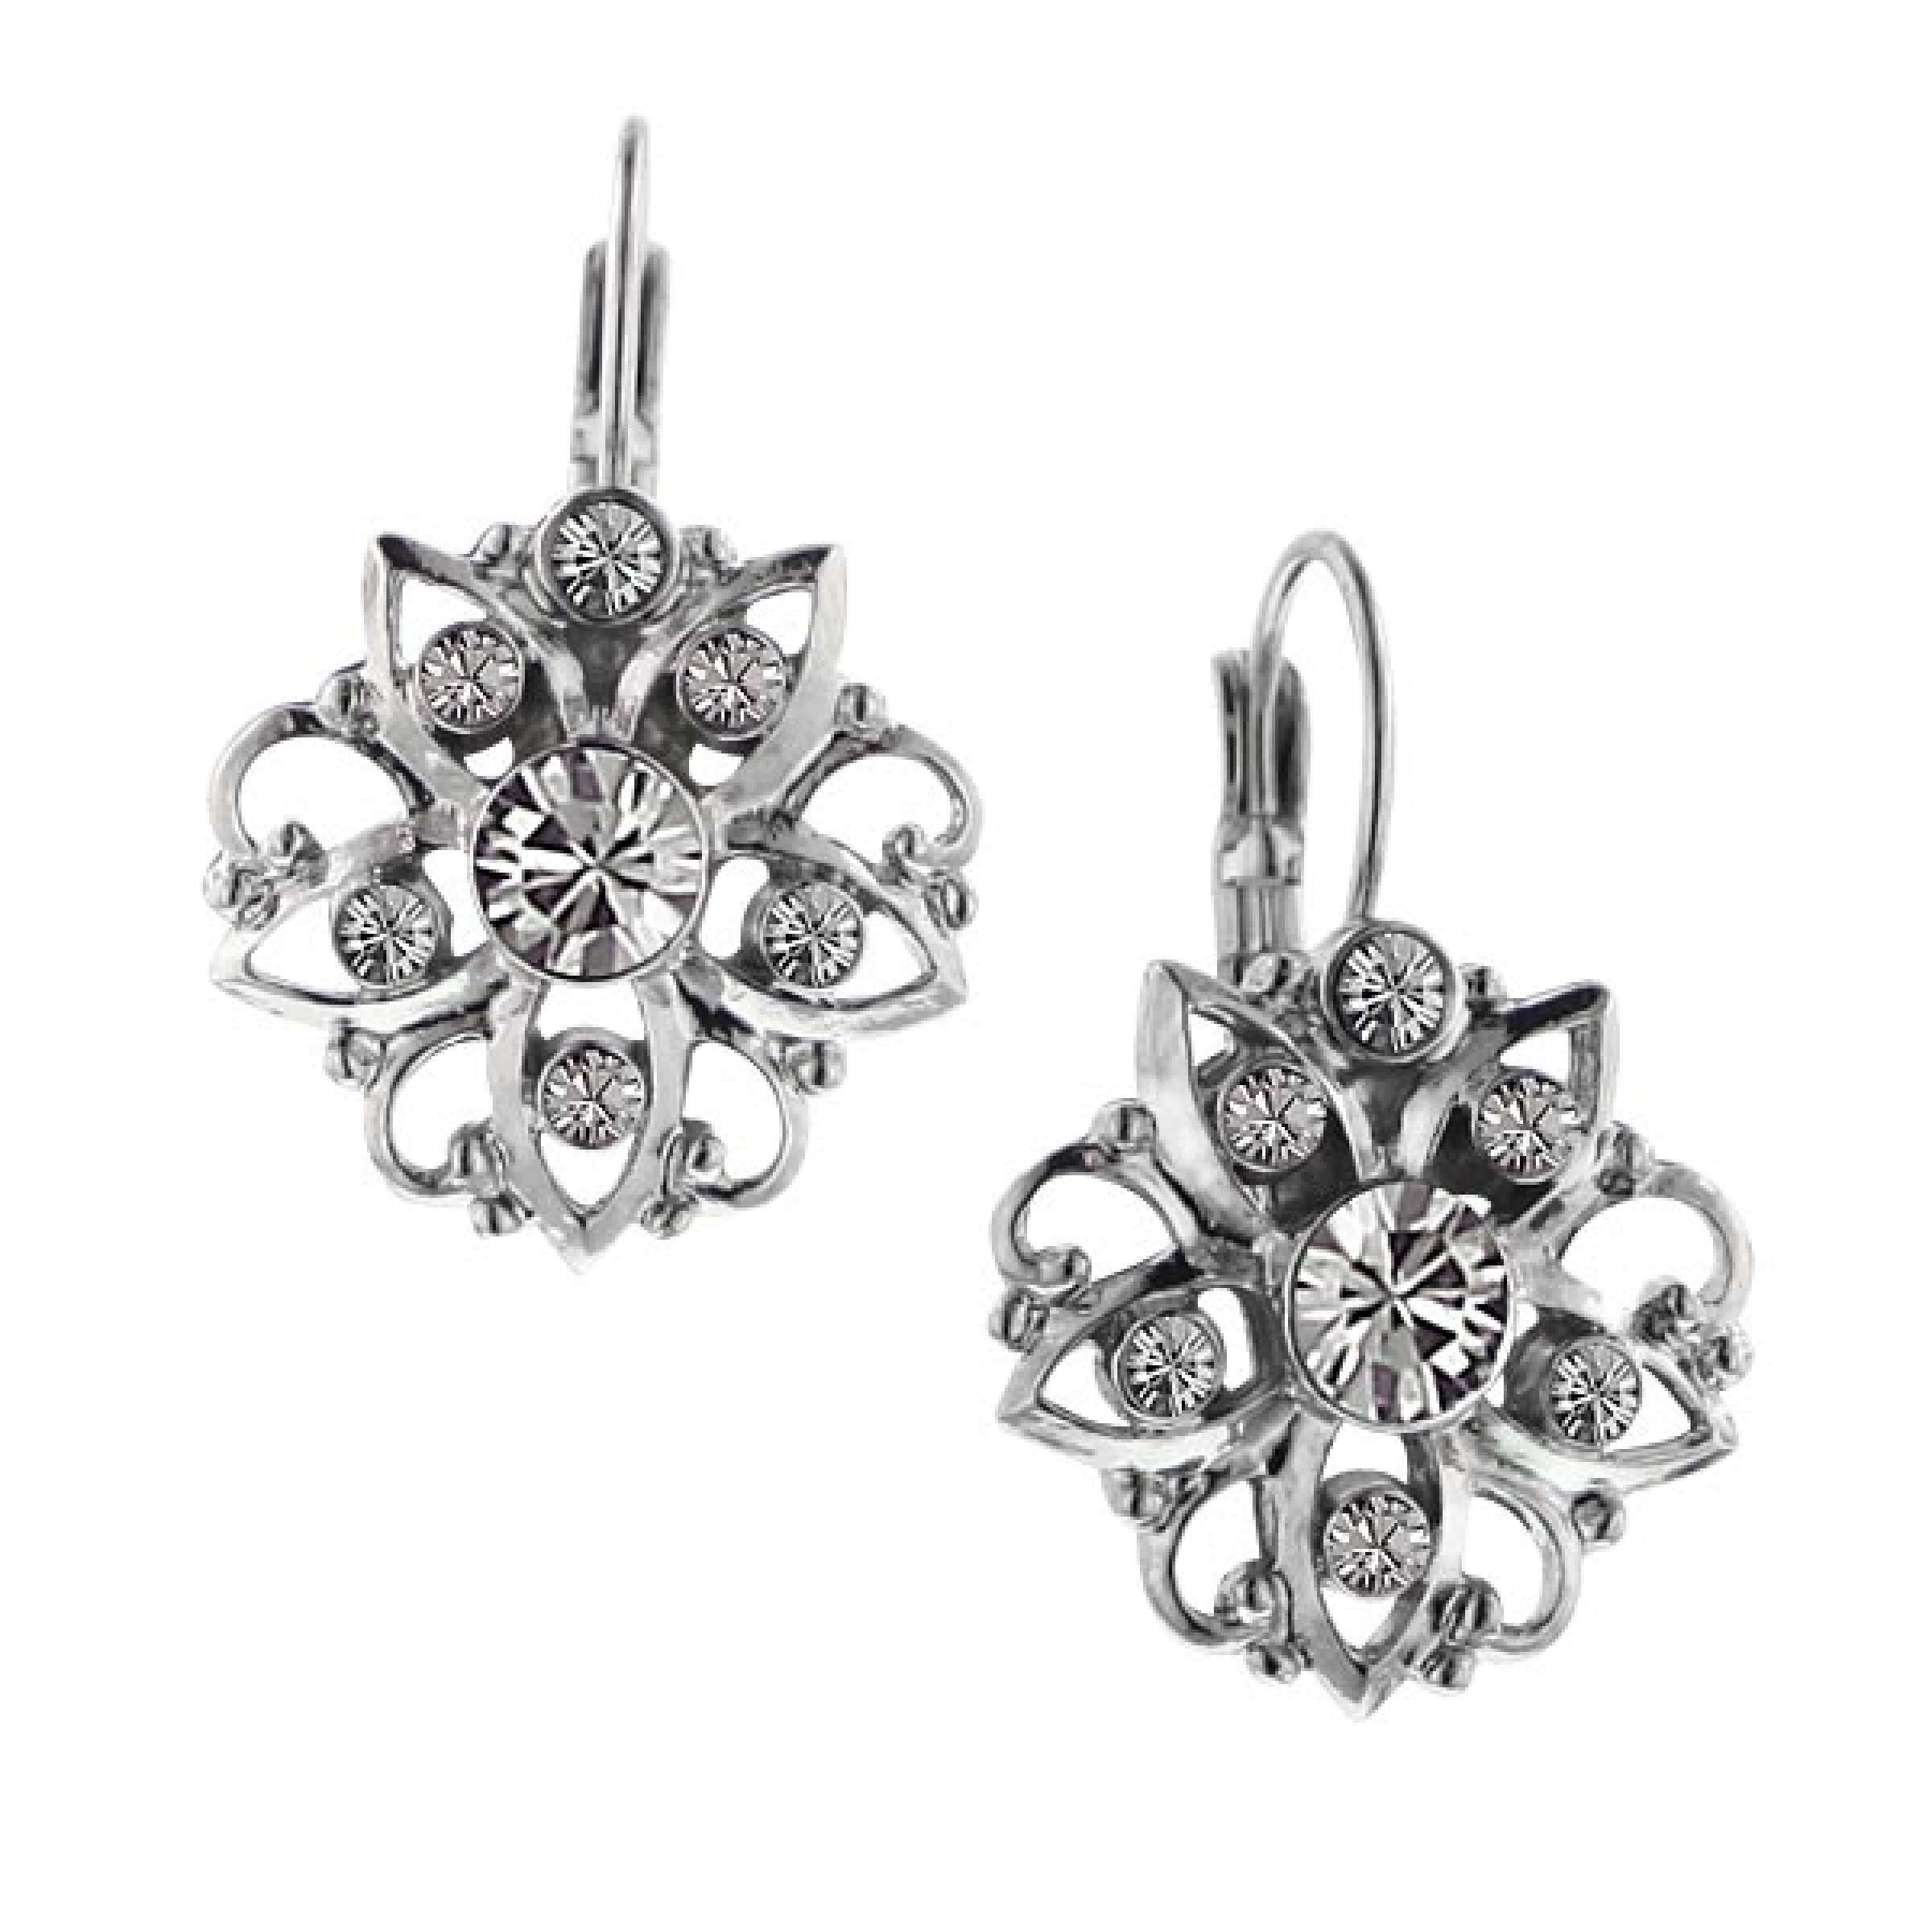 Silver-Tone Crystal Flower Drop EarringsThese dazzling floral lever back earrings are created using lightly antiqued silver tone that resembles platinum. Clear crystals create the look of sparkling diamonds set within silver tone  petals.  These shimmering lever back earrings make the romantic look of diamond and platinum possible for every woman seeking a bit of Victorian inspiration.#vintagejewelry #fashionjewelry #costumejewelry #bridaljewelry #antiquejewelry